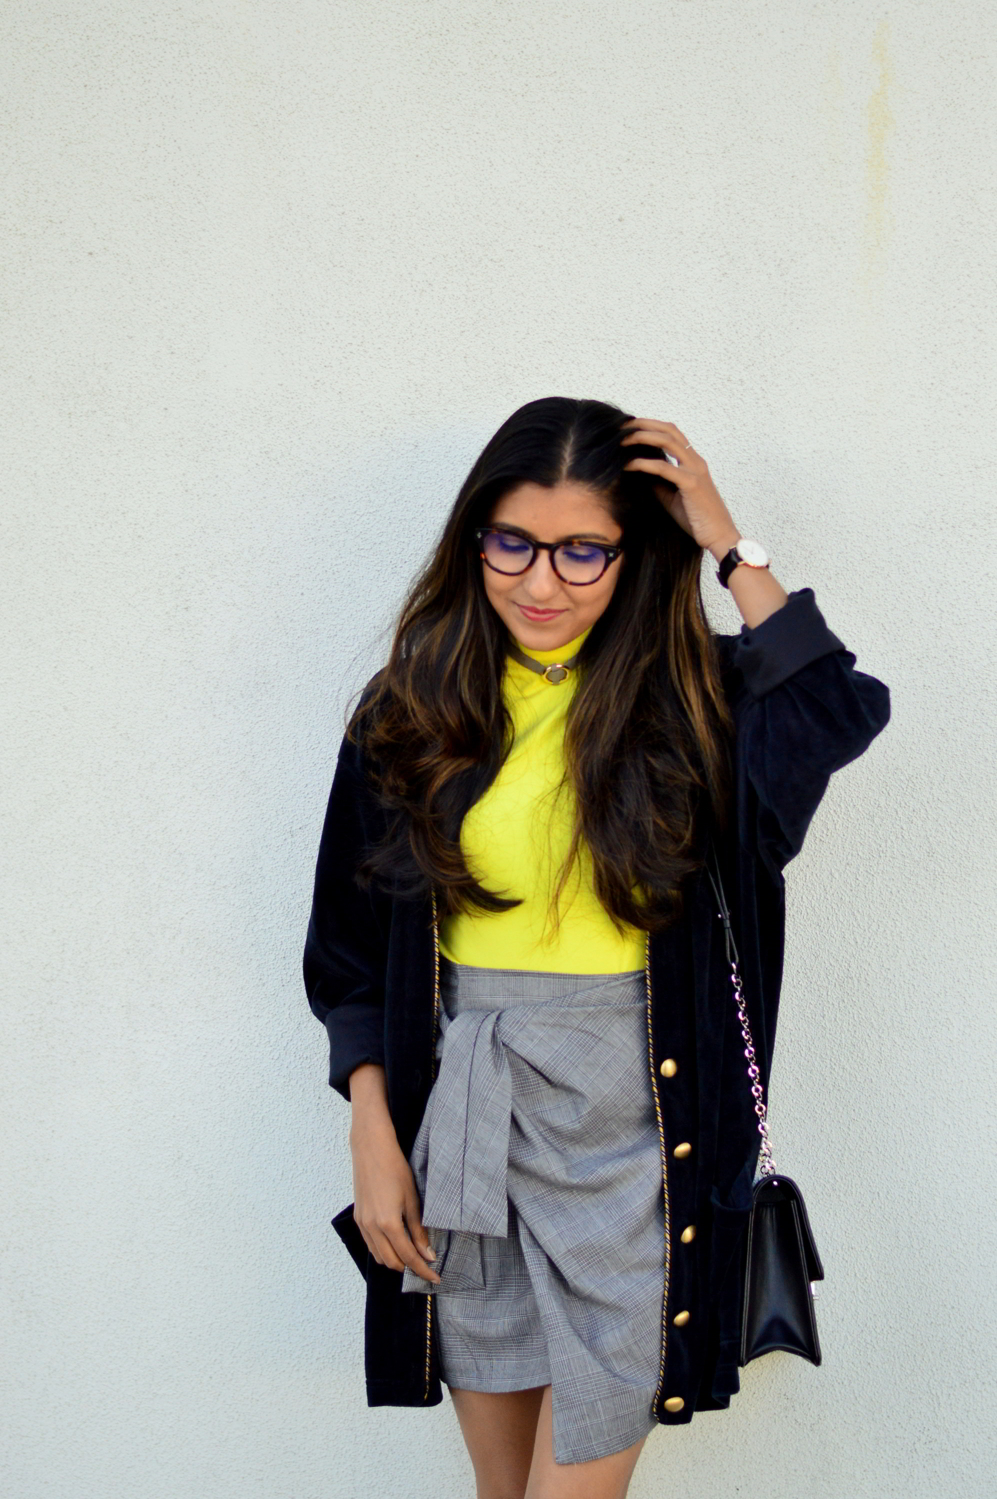 plaid-bow-knot-skirt-clear-glasses-work-style-casual-outfit-blogger-yellow 2